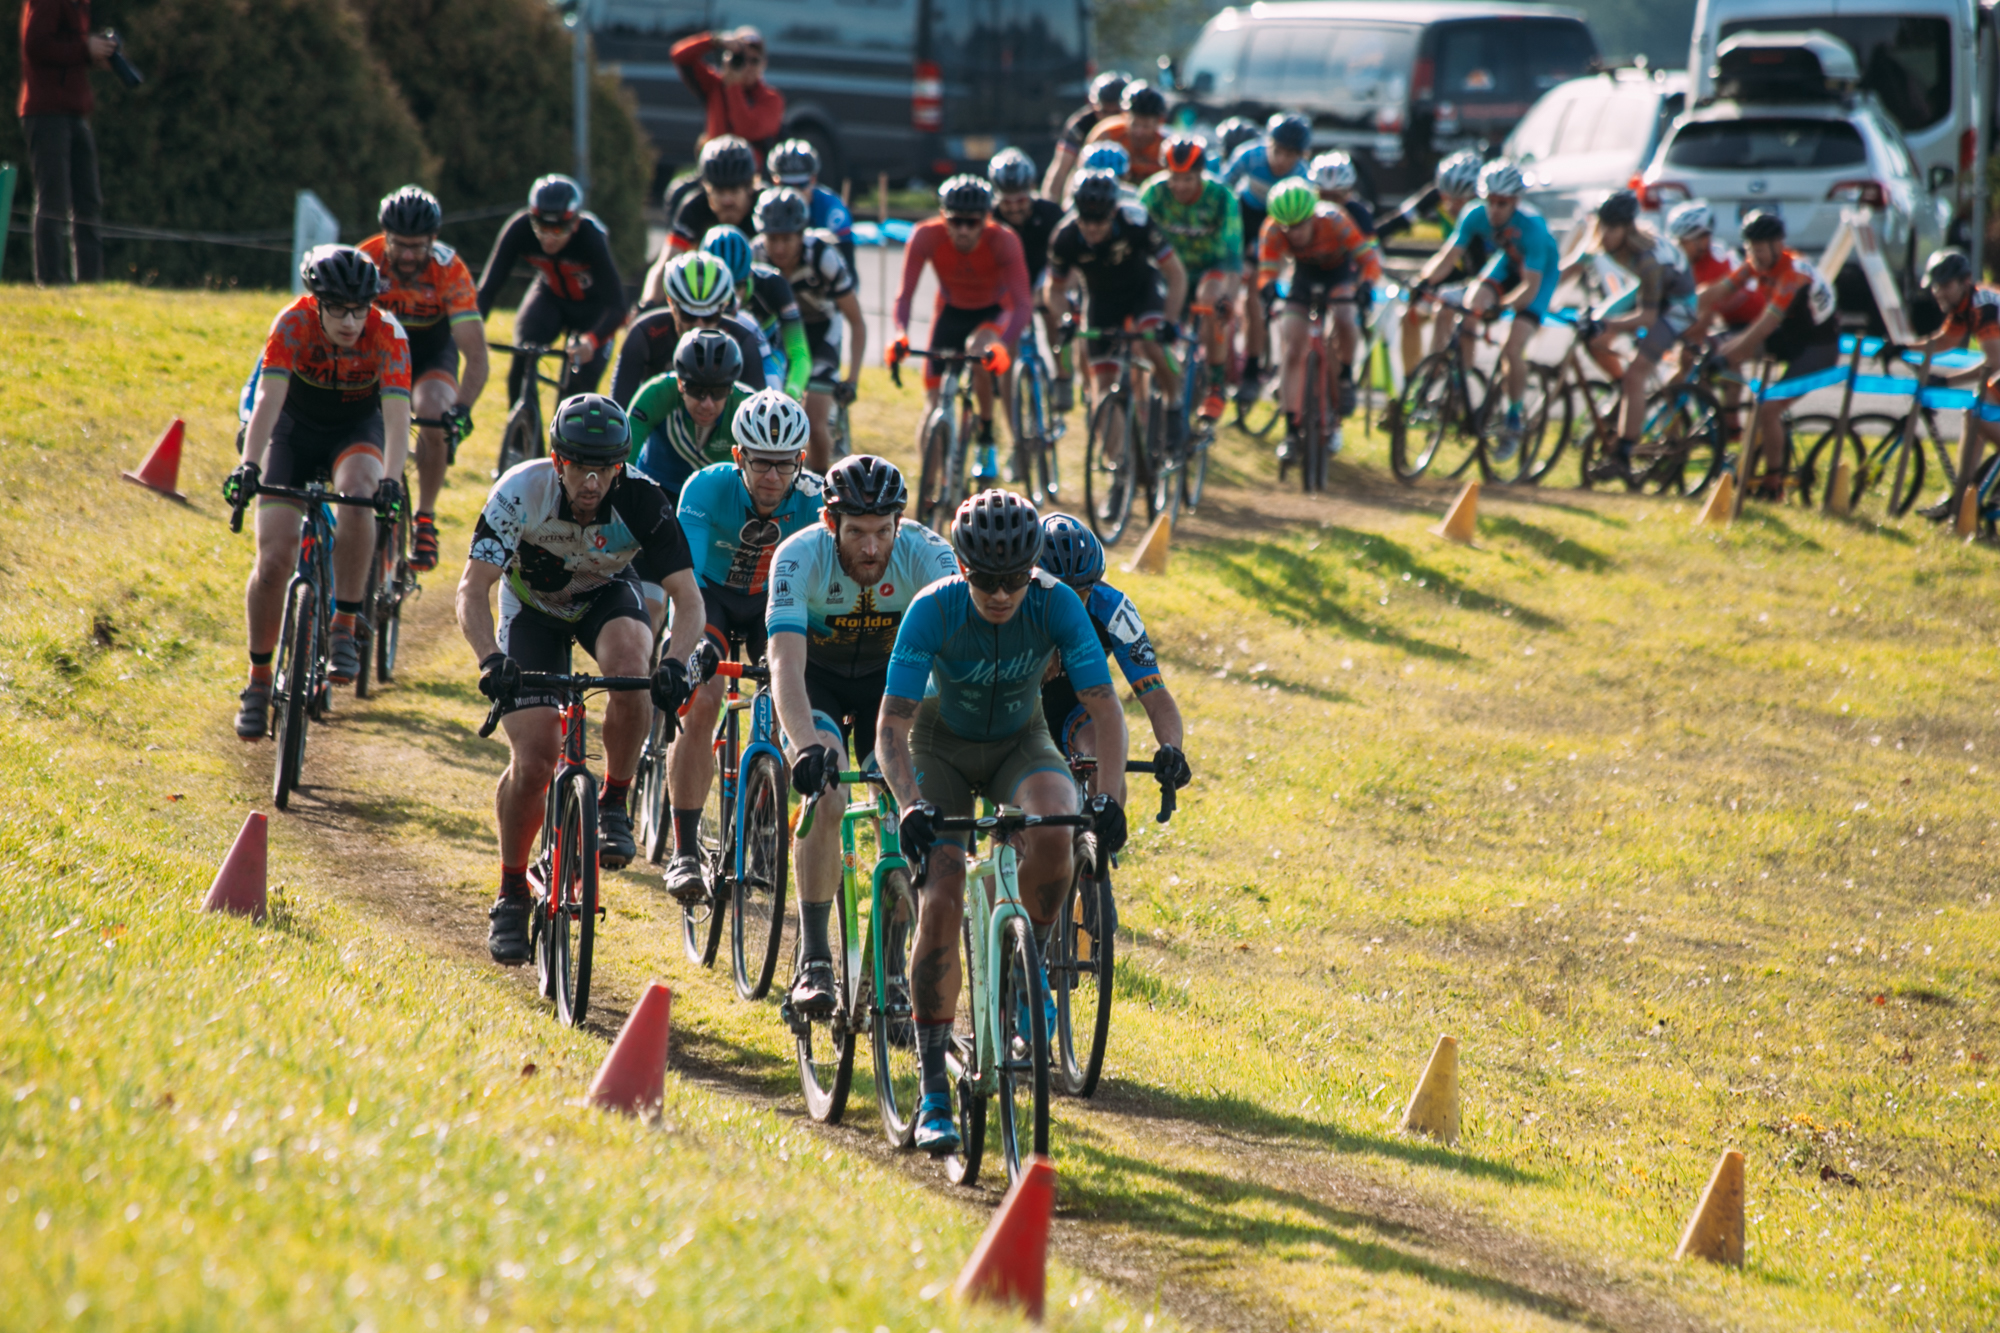 Cyclocross18_CCCX_RainierHS-23-mettlecycling.jpg